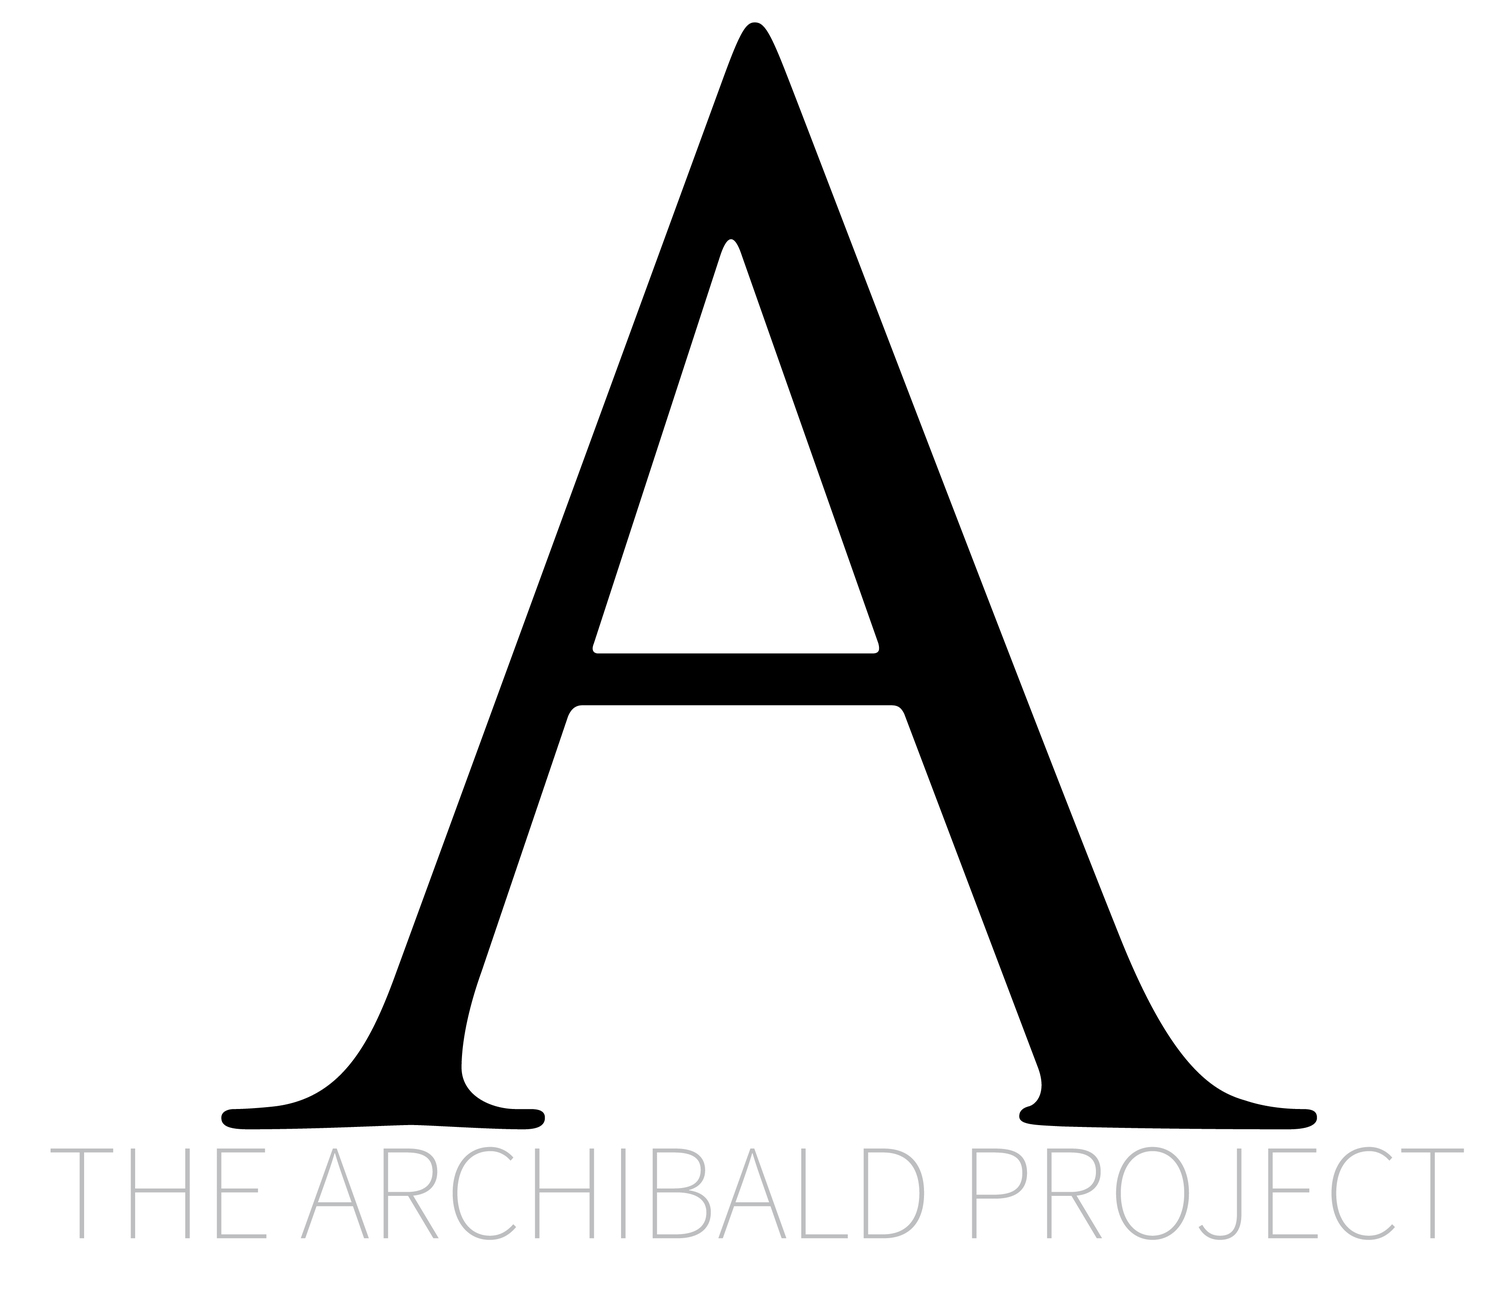 The Archibald Project